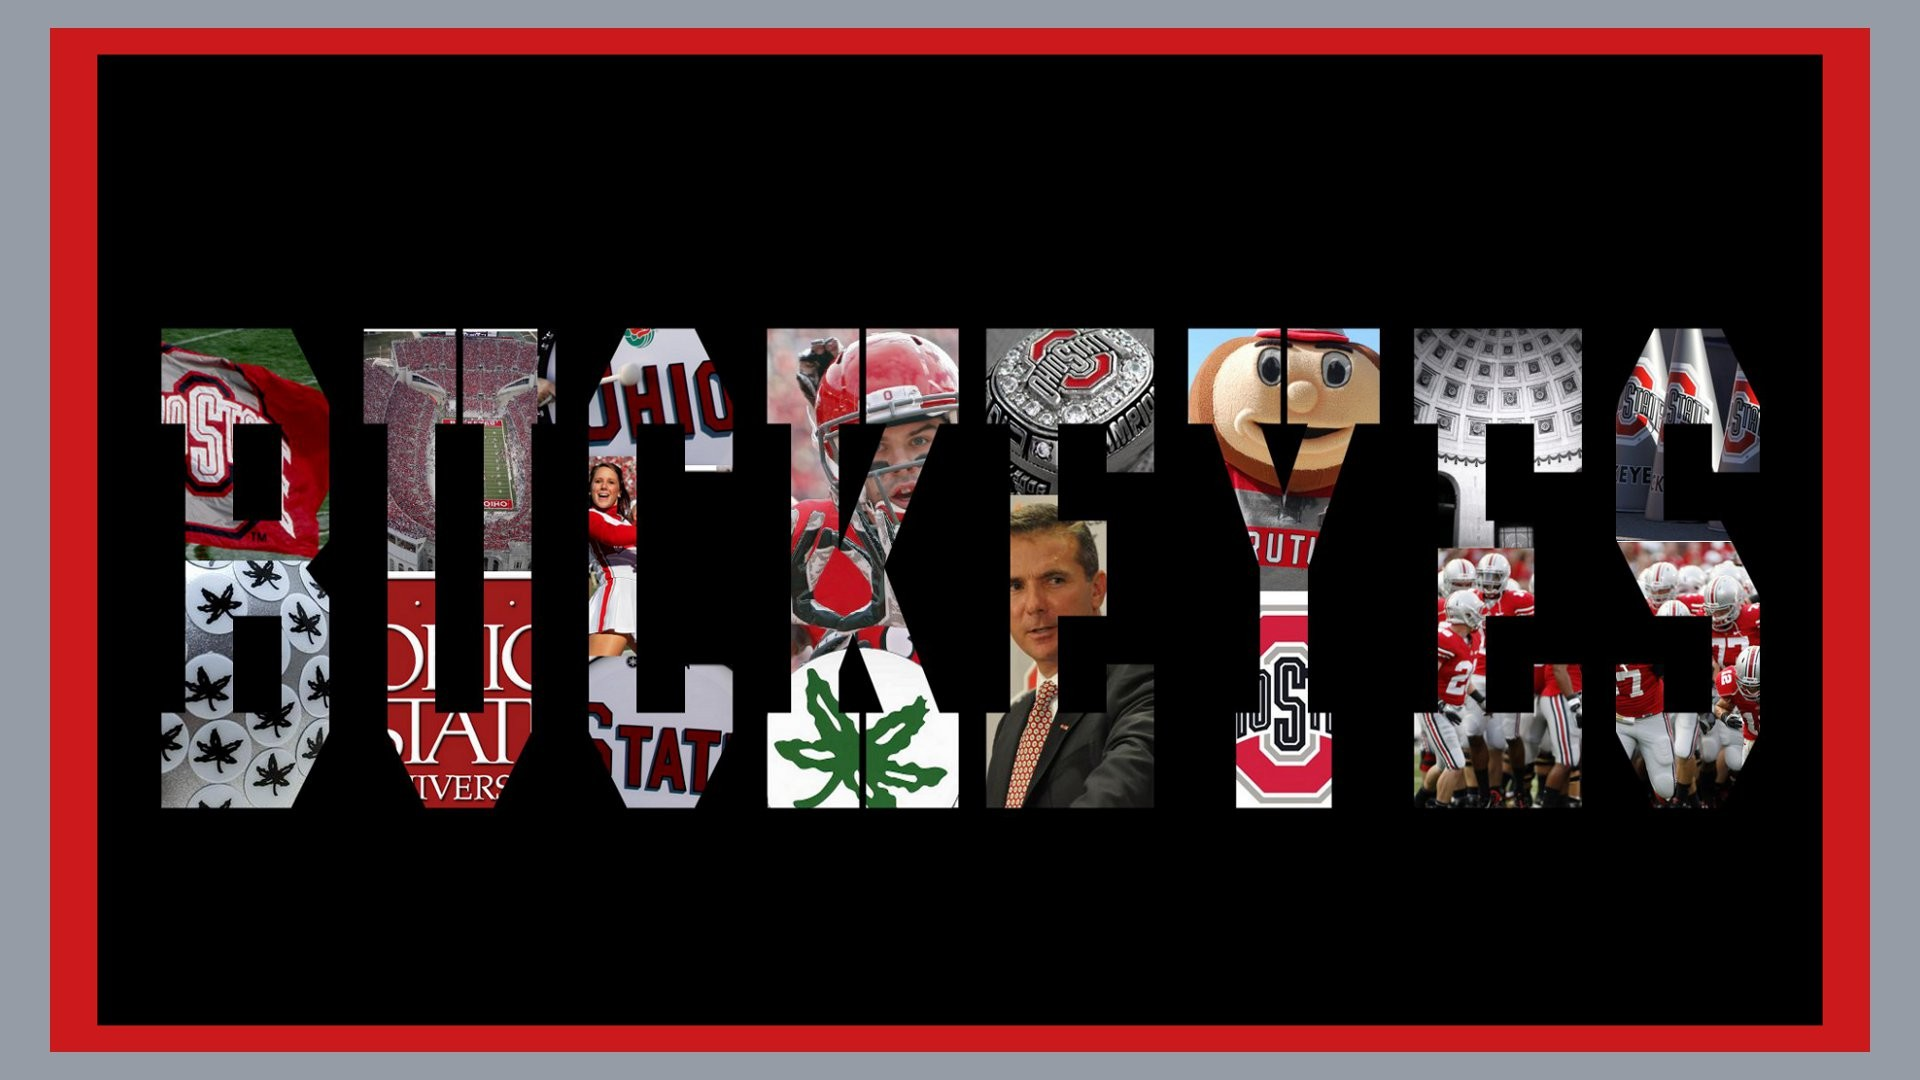 1920x1080 OHIO STATE BUCKEYES college football 7 wallpaper background